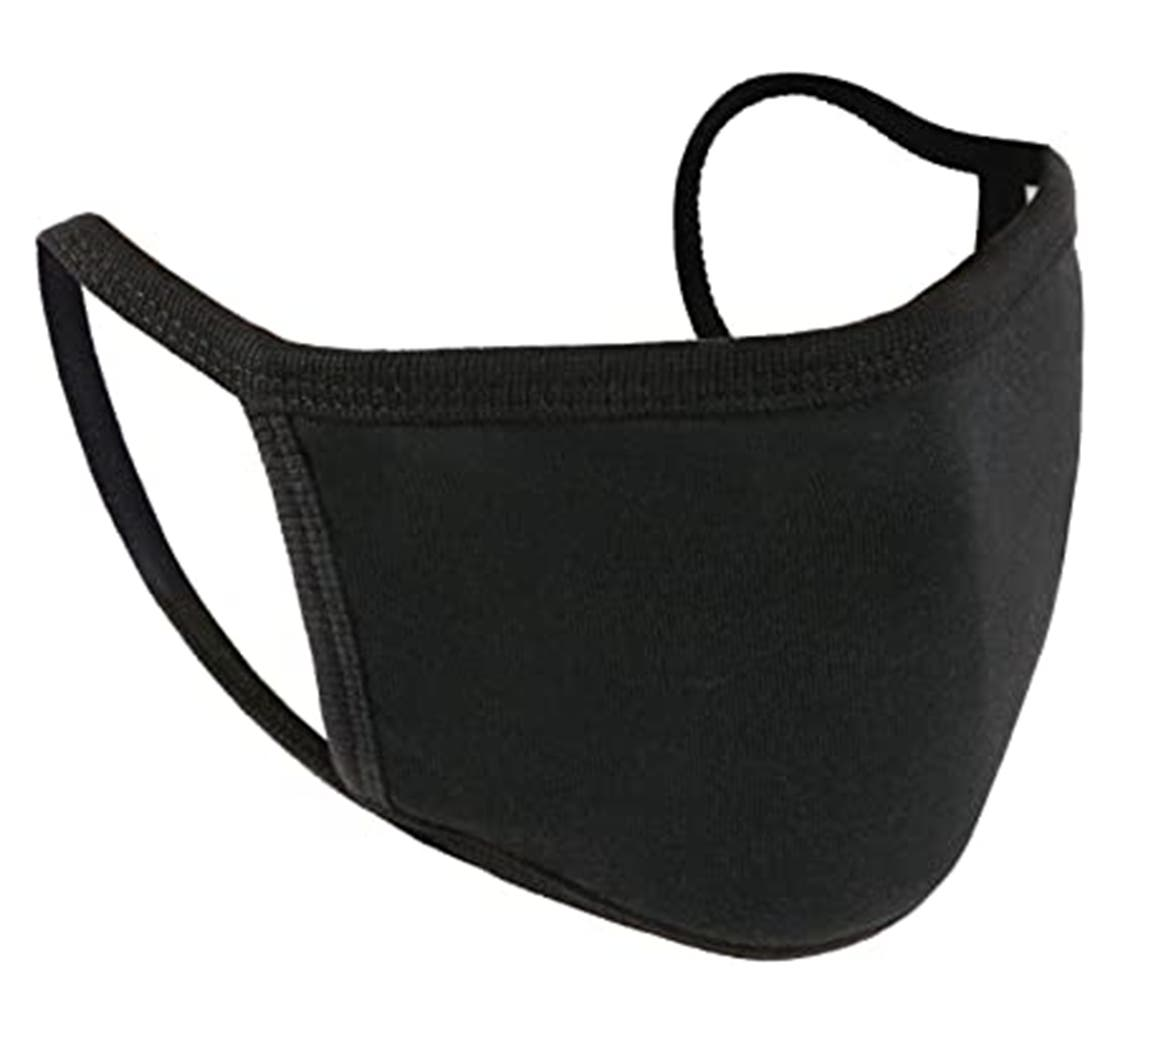 High Quality, Comfortable to Wear, Protective Cotton Face Masks, Available in 3 Sizes – Black